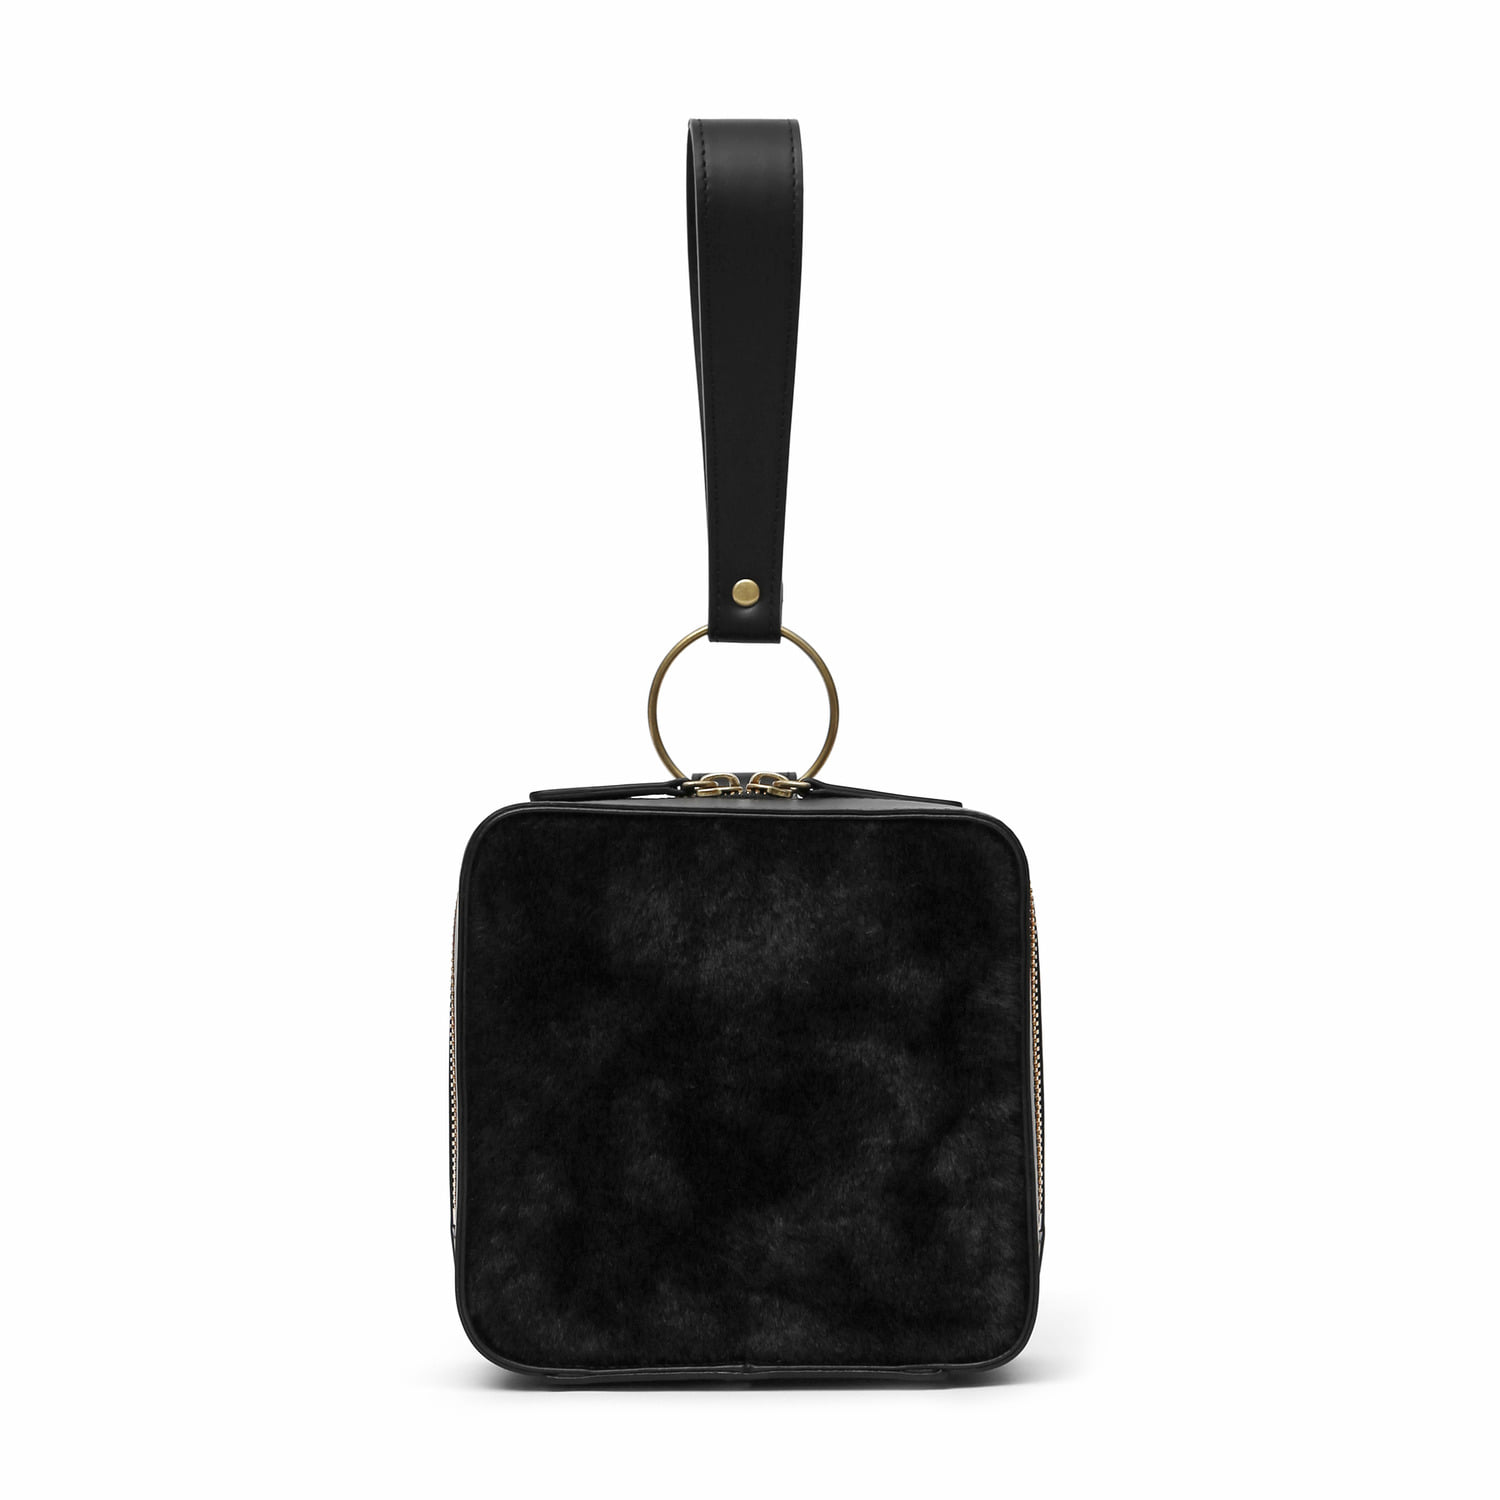 BLOCK BAG / RING STRAP / FUR / BLACK